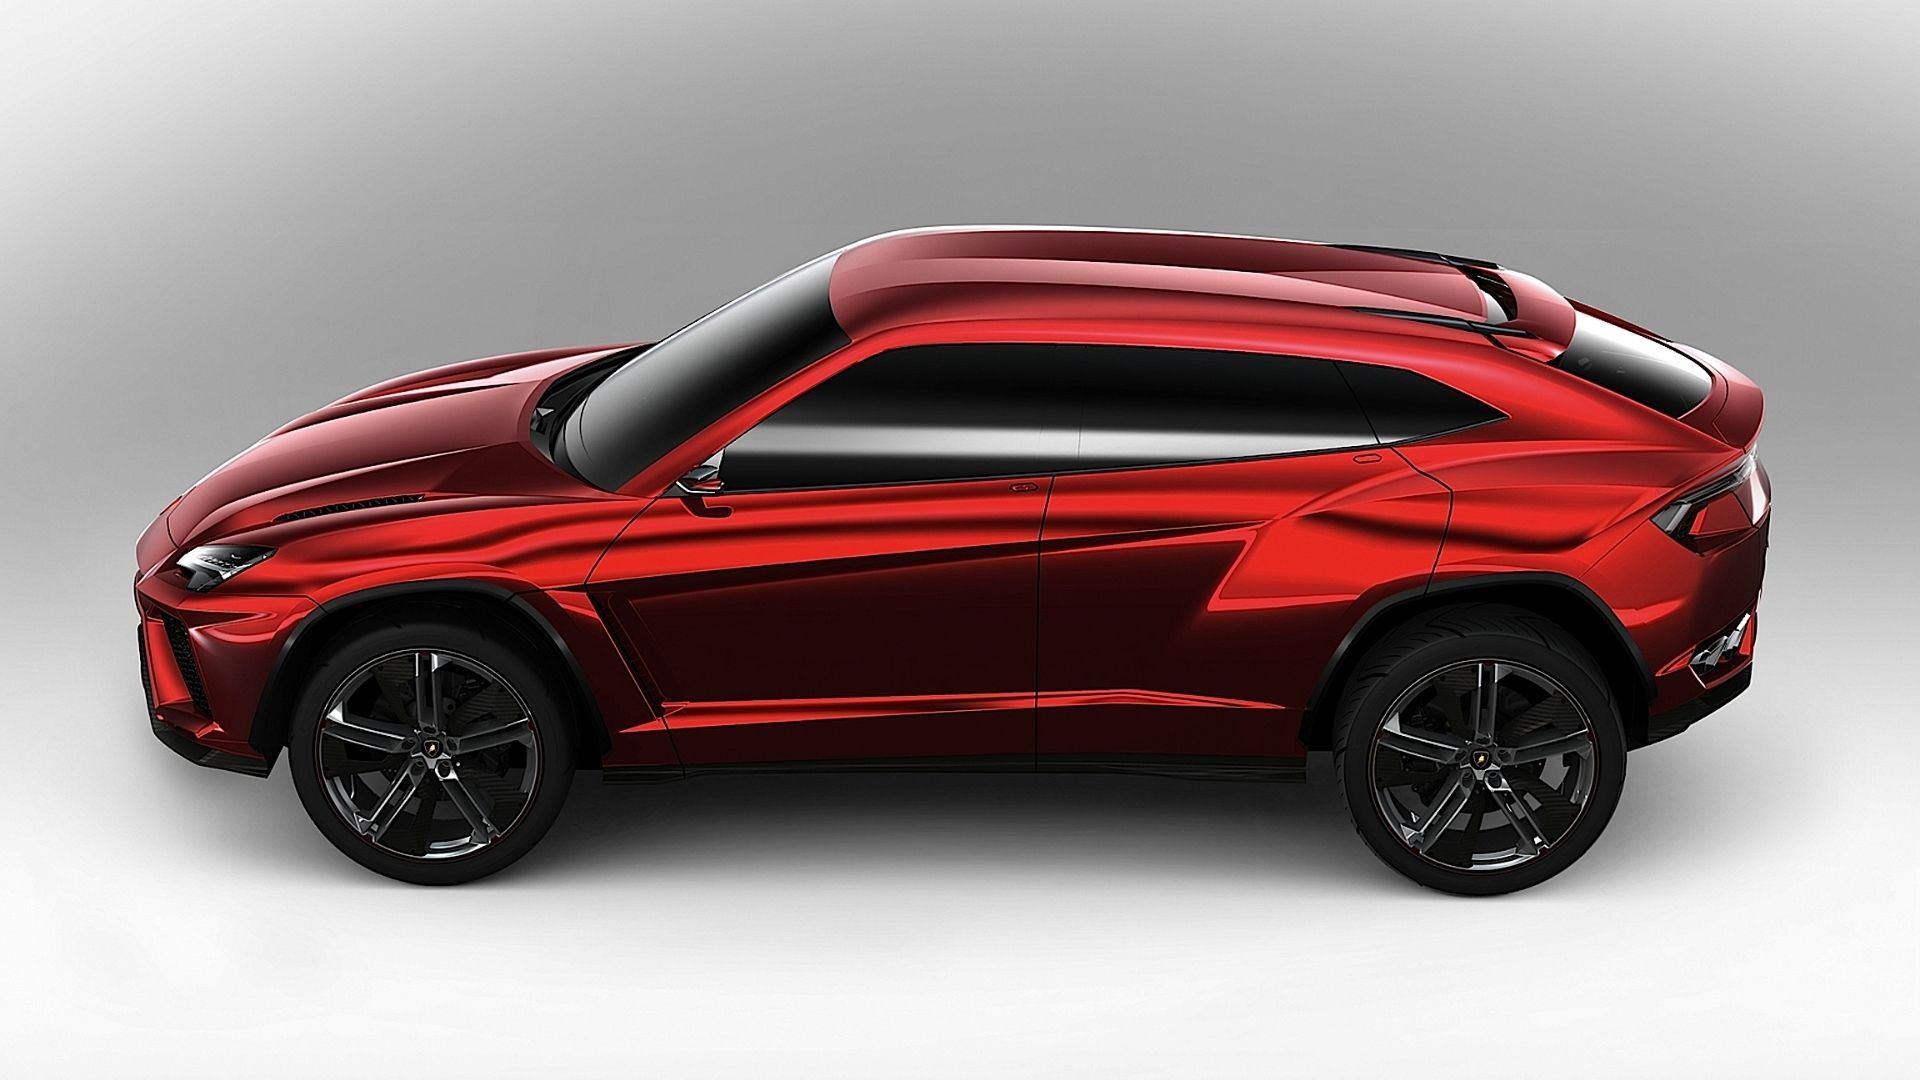 Concept car magazine cool car wallpapers - Lamborghini Confirms Third Model Line The New Suv Based On The Urus Concept Car And Scheduled For Launch In News And Analysis By Car Magazine Uk